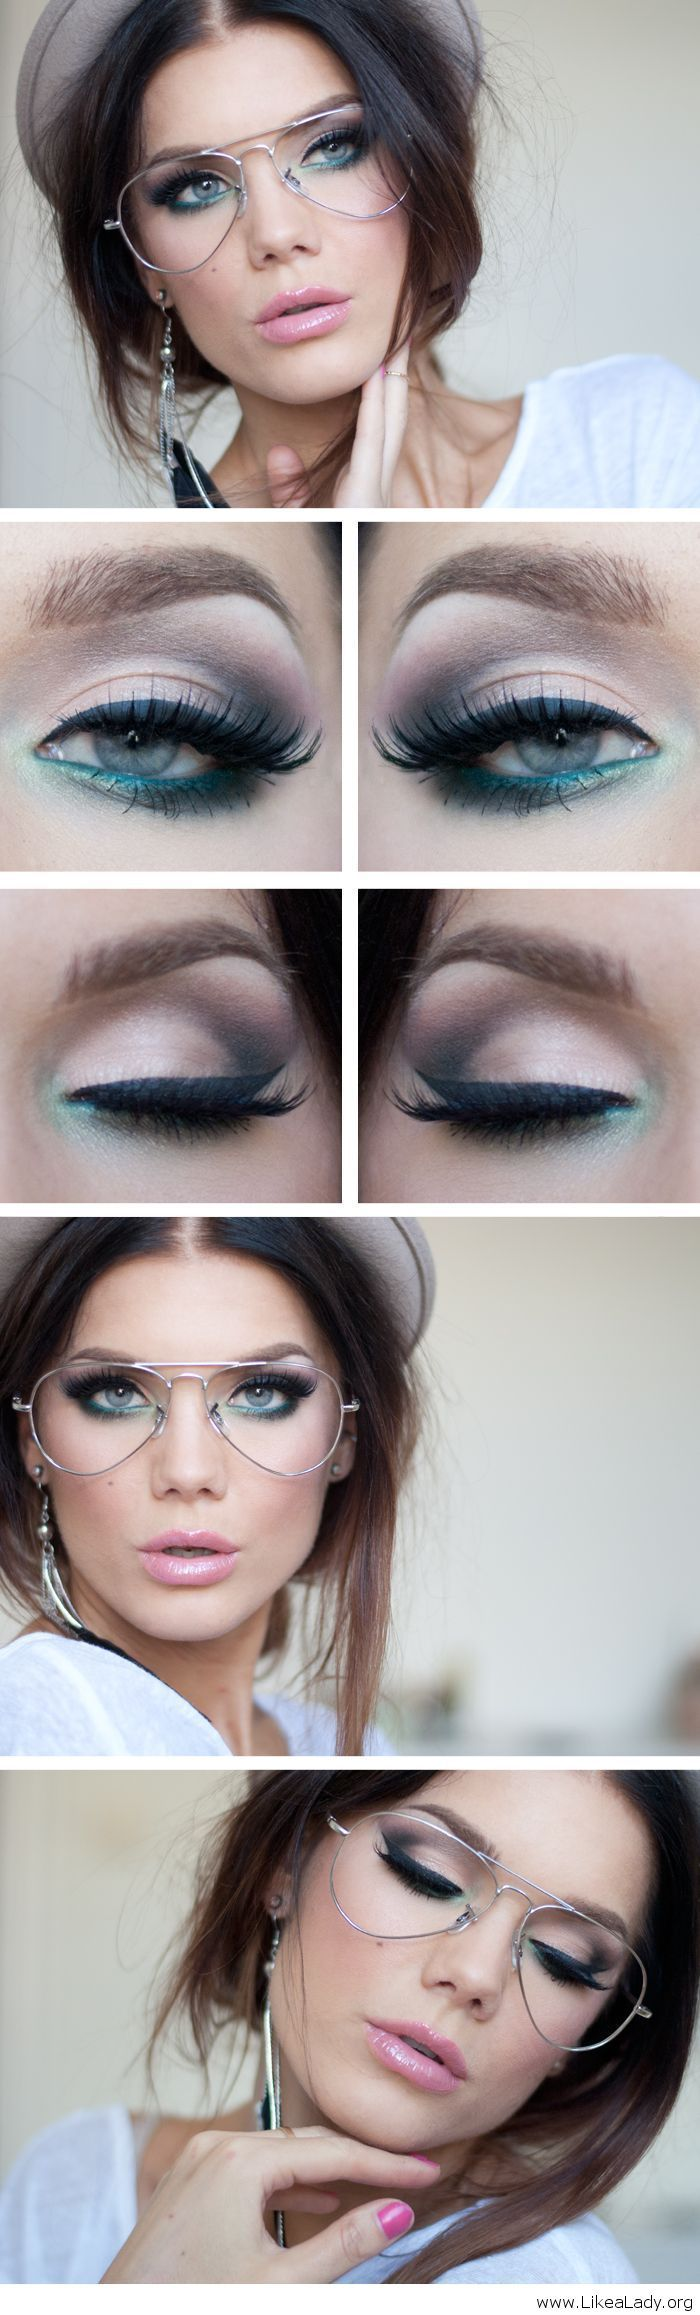 Amazing makeup for girls with glasses